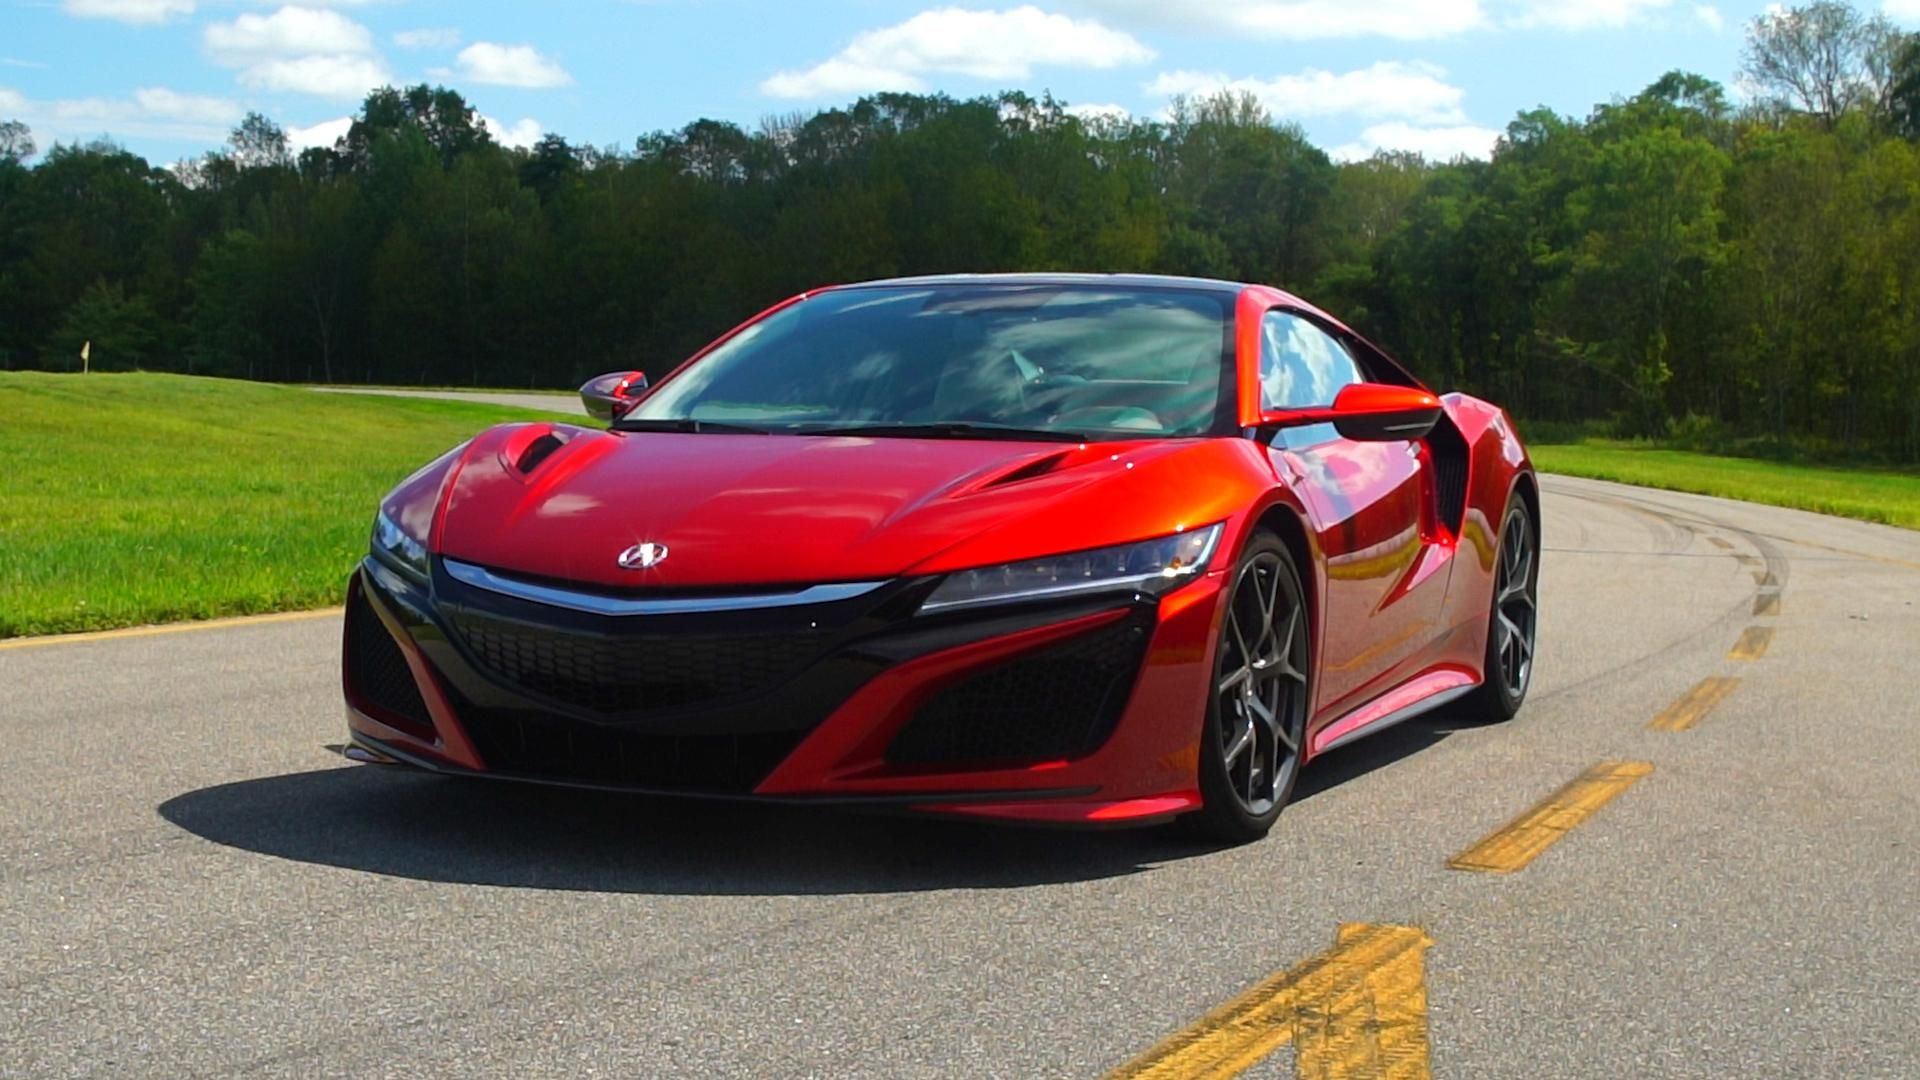 Consumer Reports Reviews The 2017 Acura Nsx Hybrid Supercar A Mid Engine Sports Car Resurrected With All Wheel Drive Twin Turbos Three Electric Motors